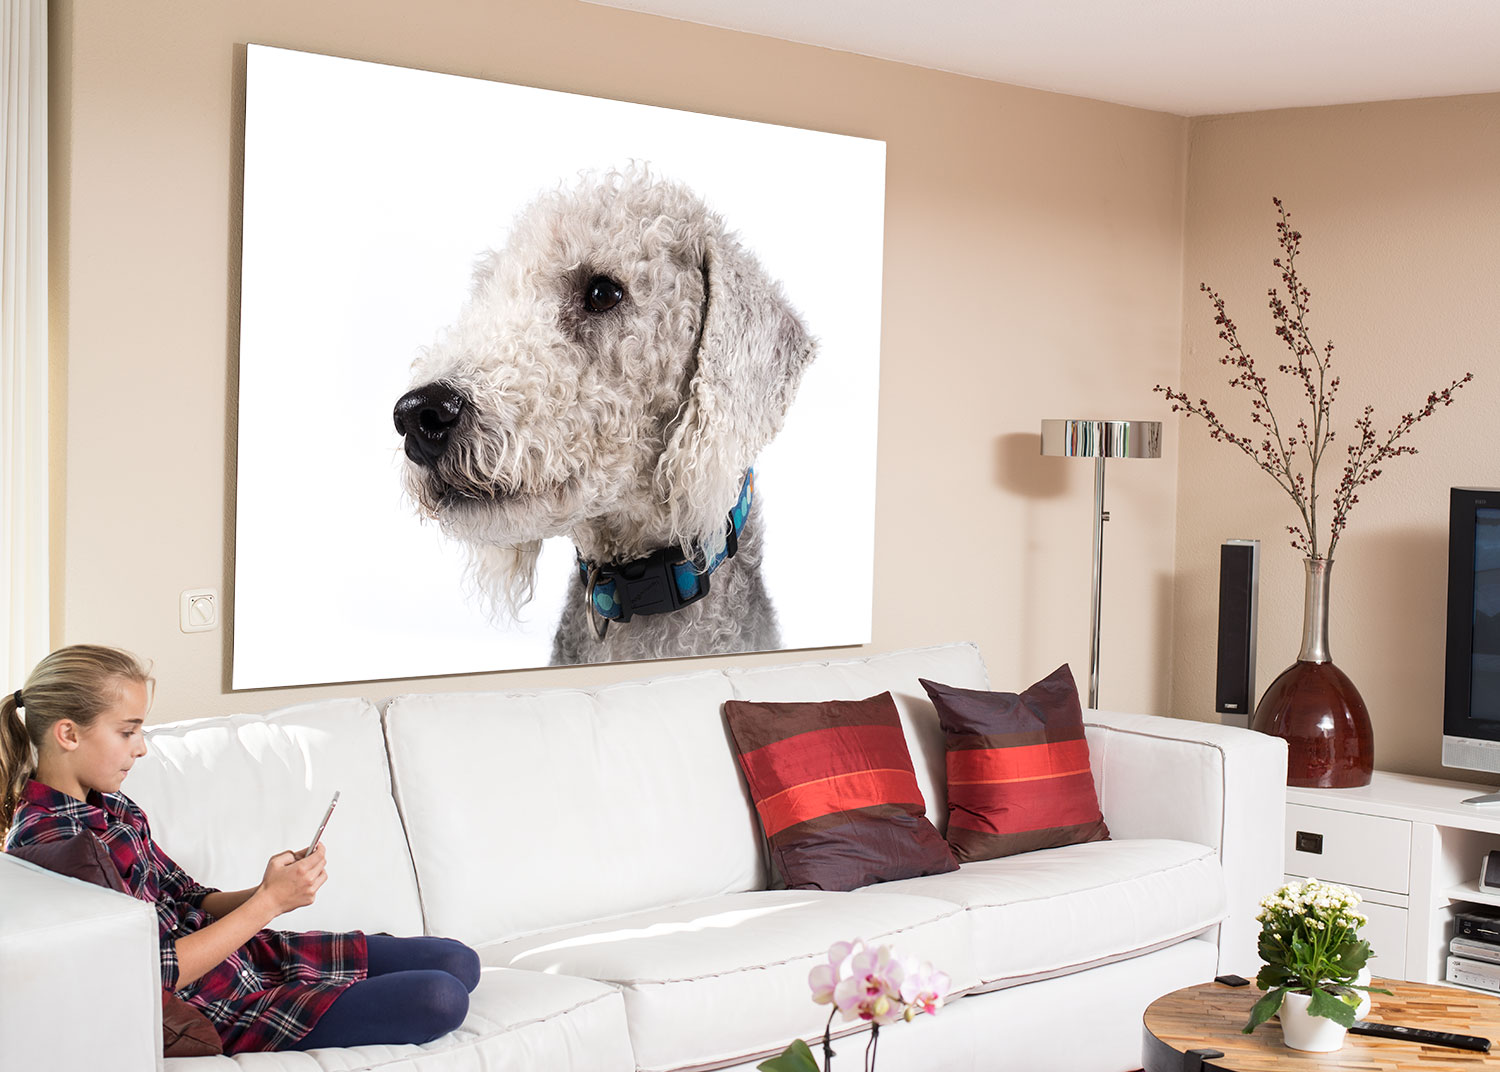 Contemporary room set with very large wall art of Bedlington Terrier dog photography